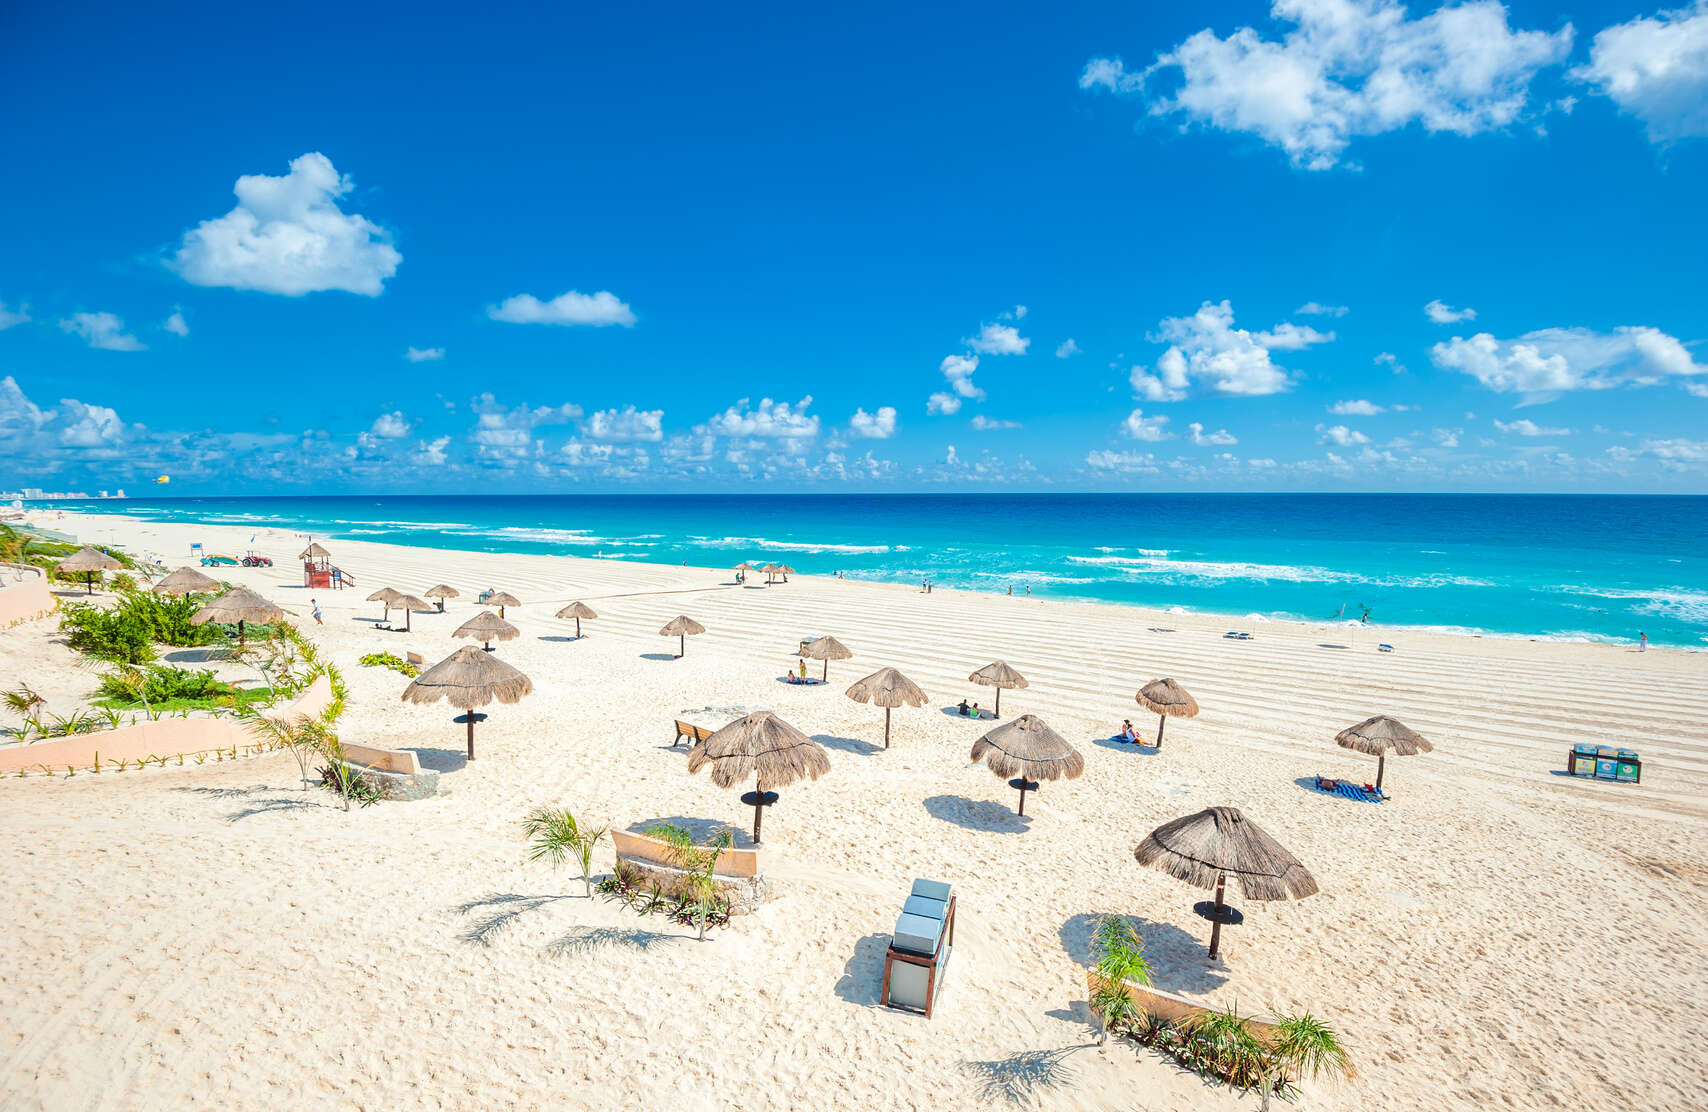 The Beach Connoisseur's Guide to Cancun Sunbathing